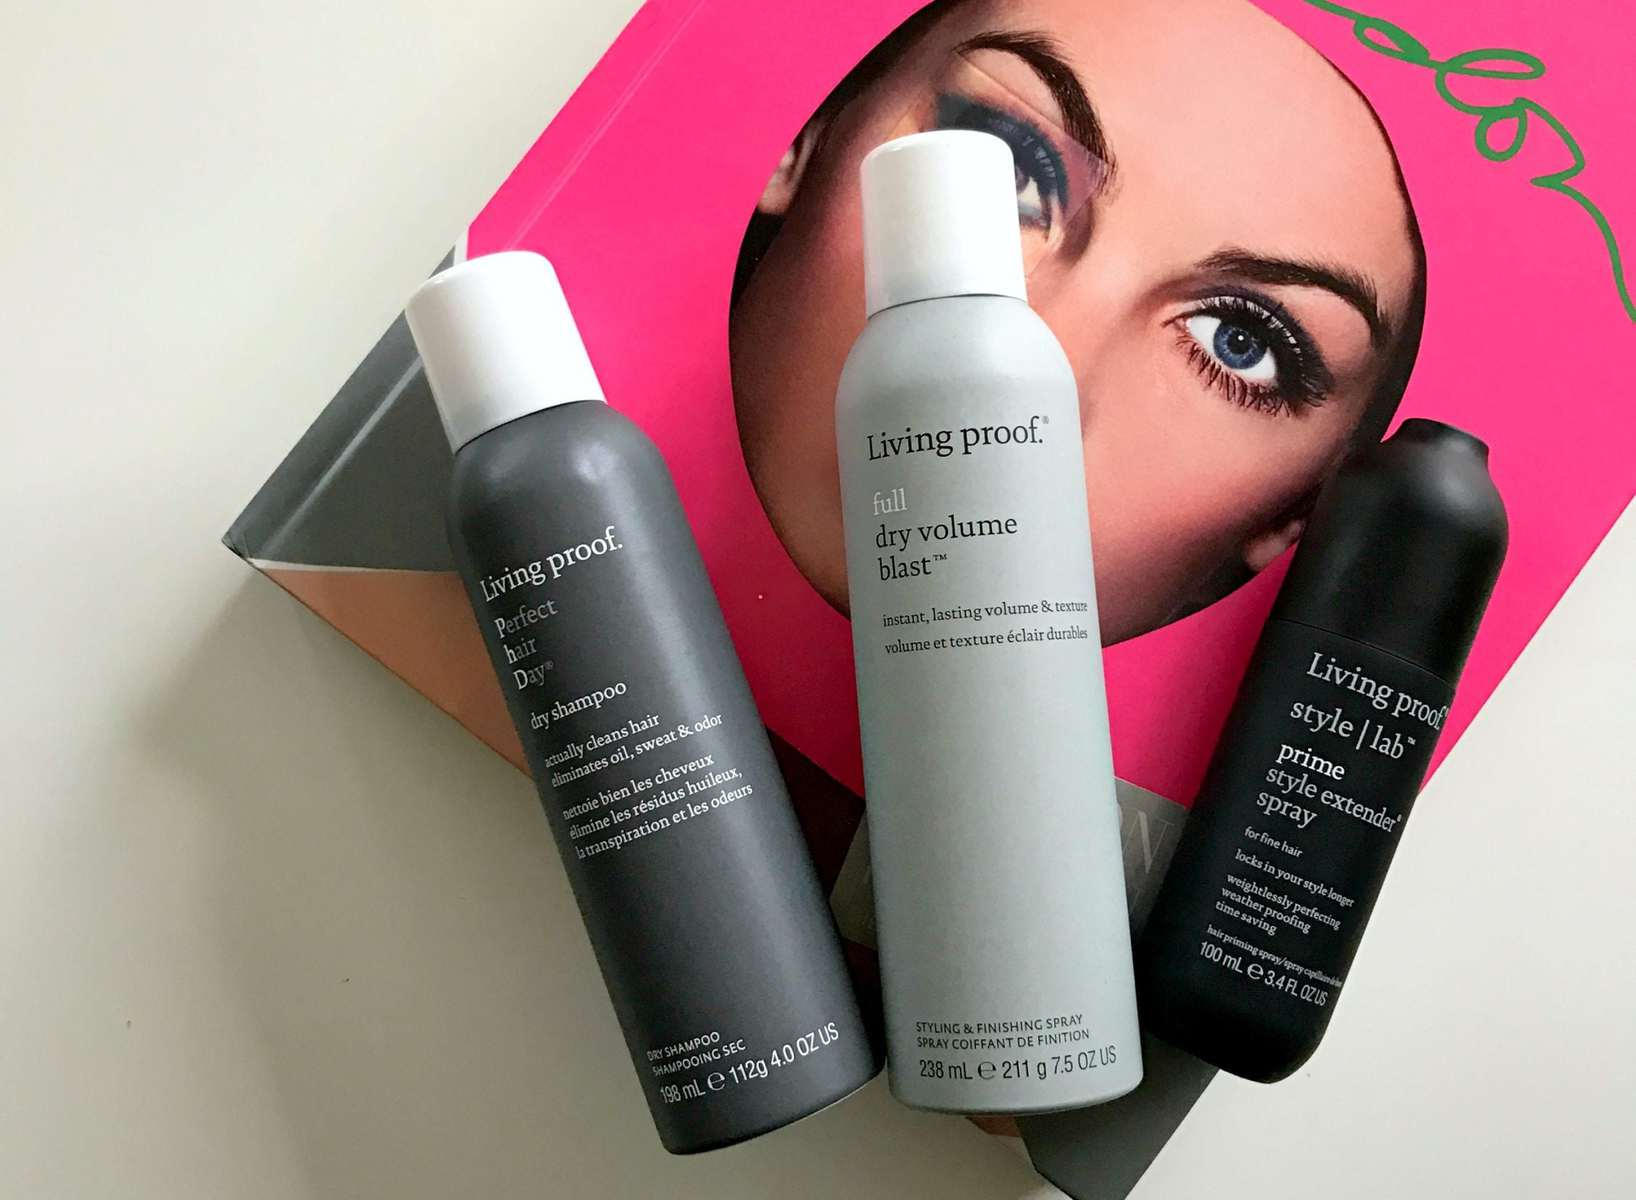 Wardrobe Oxygen - Living proof haircare review